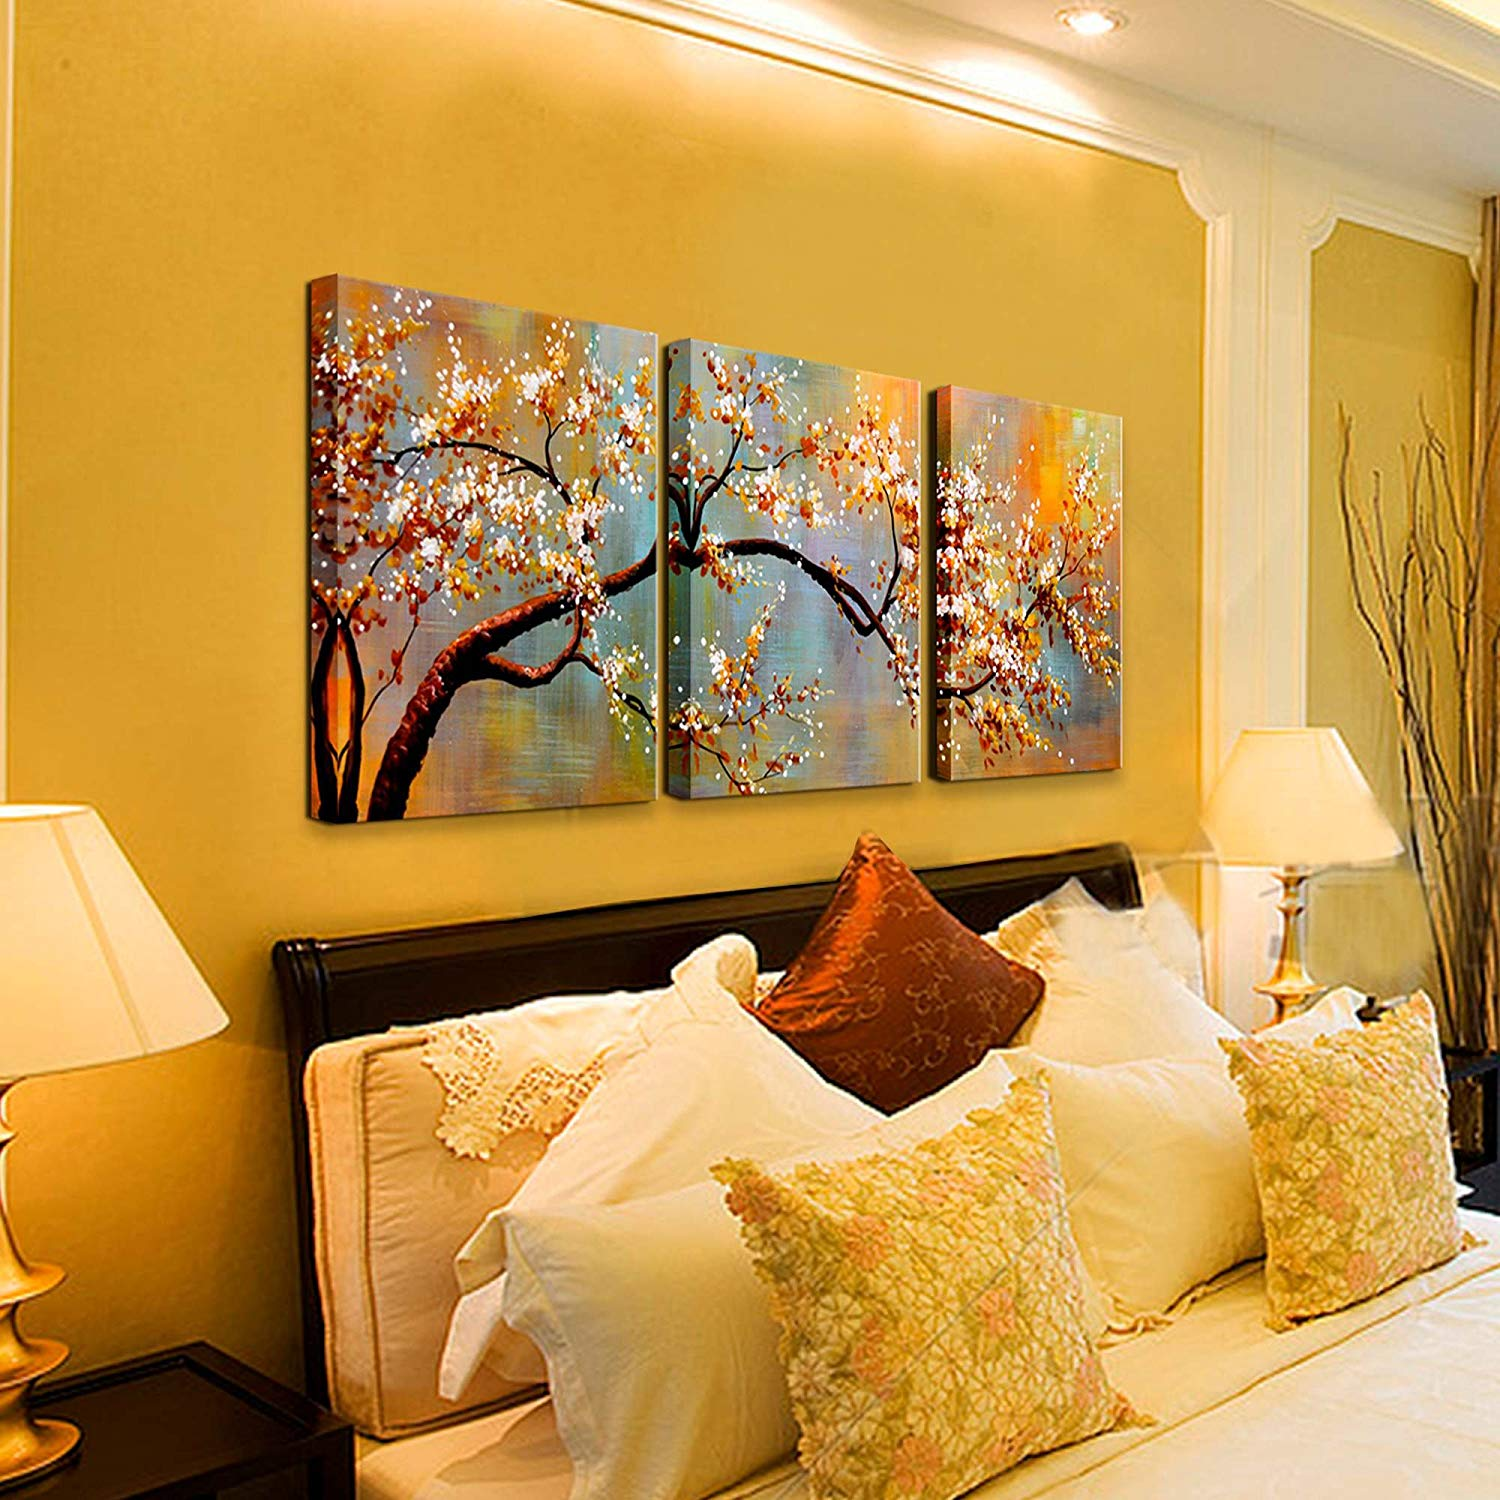 Cheap Artwork Decor, find Artwork Decor deals on line at Alibaba.com